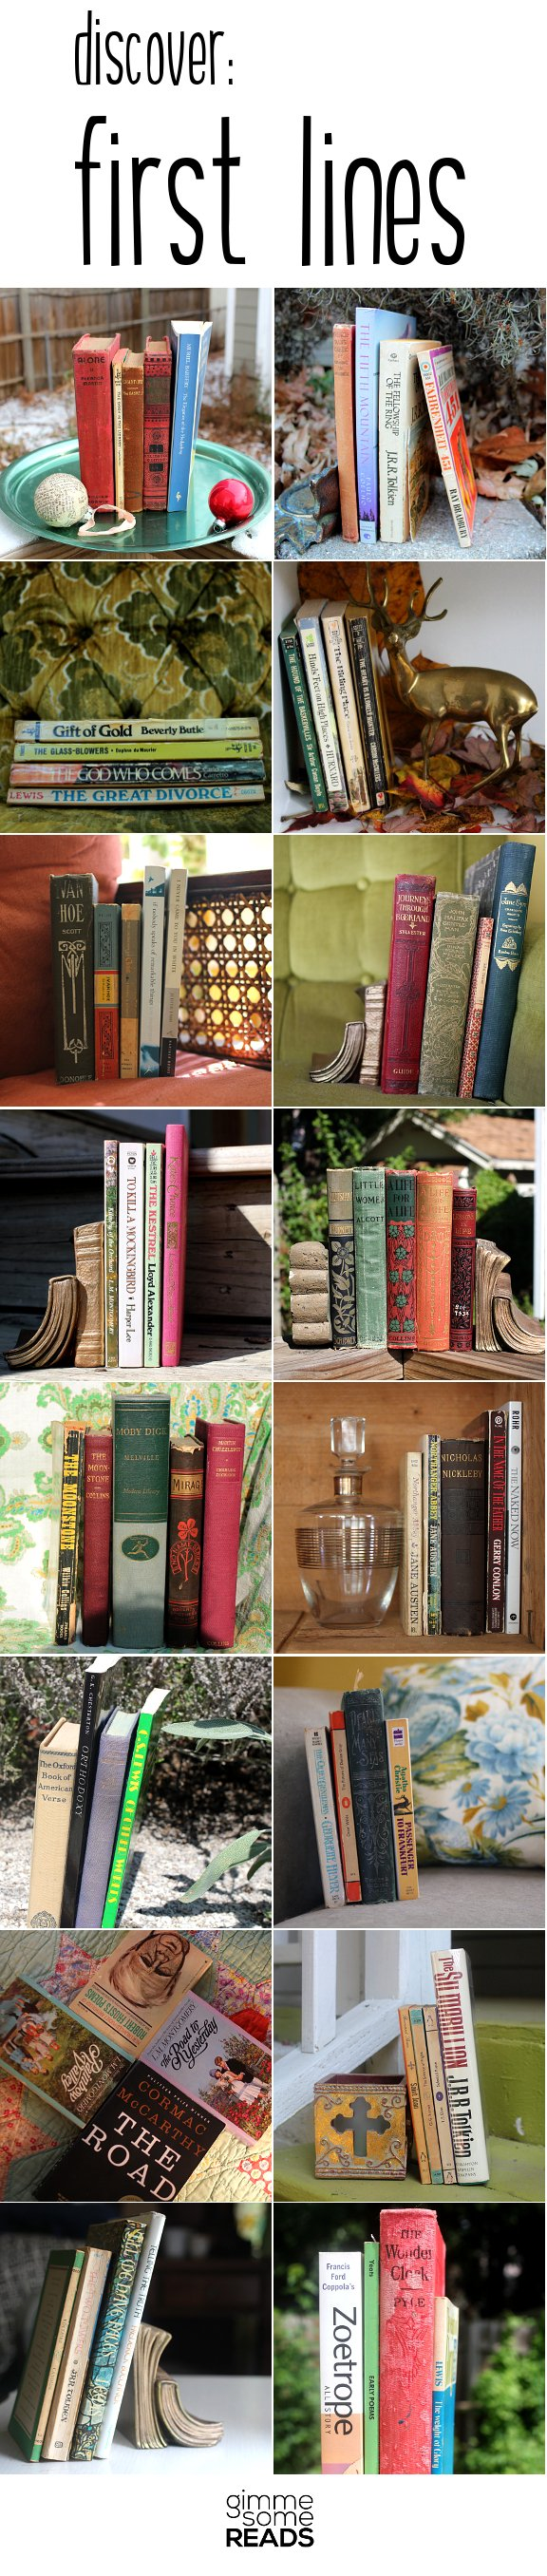 Discover: First Lines montage | Gimme Some Reads